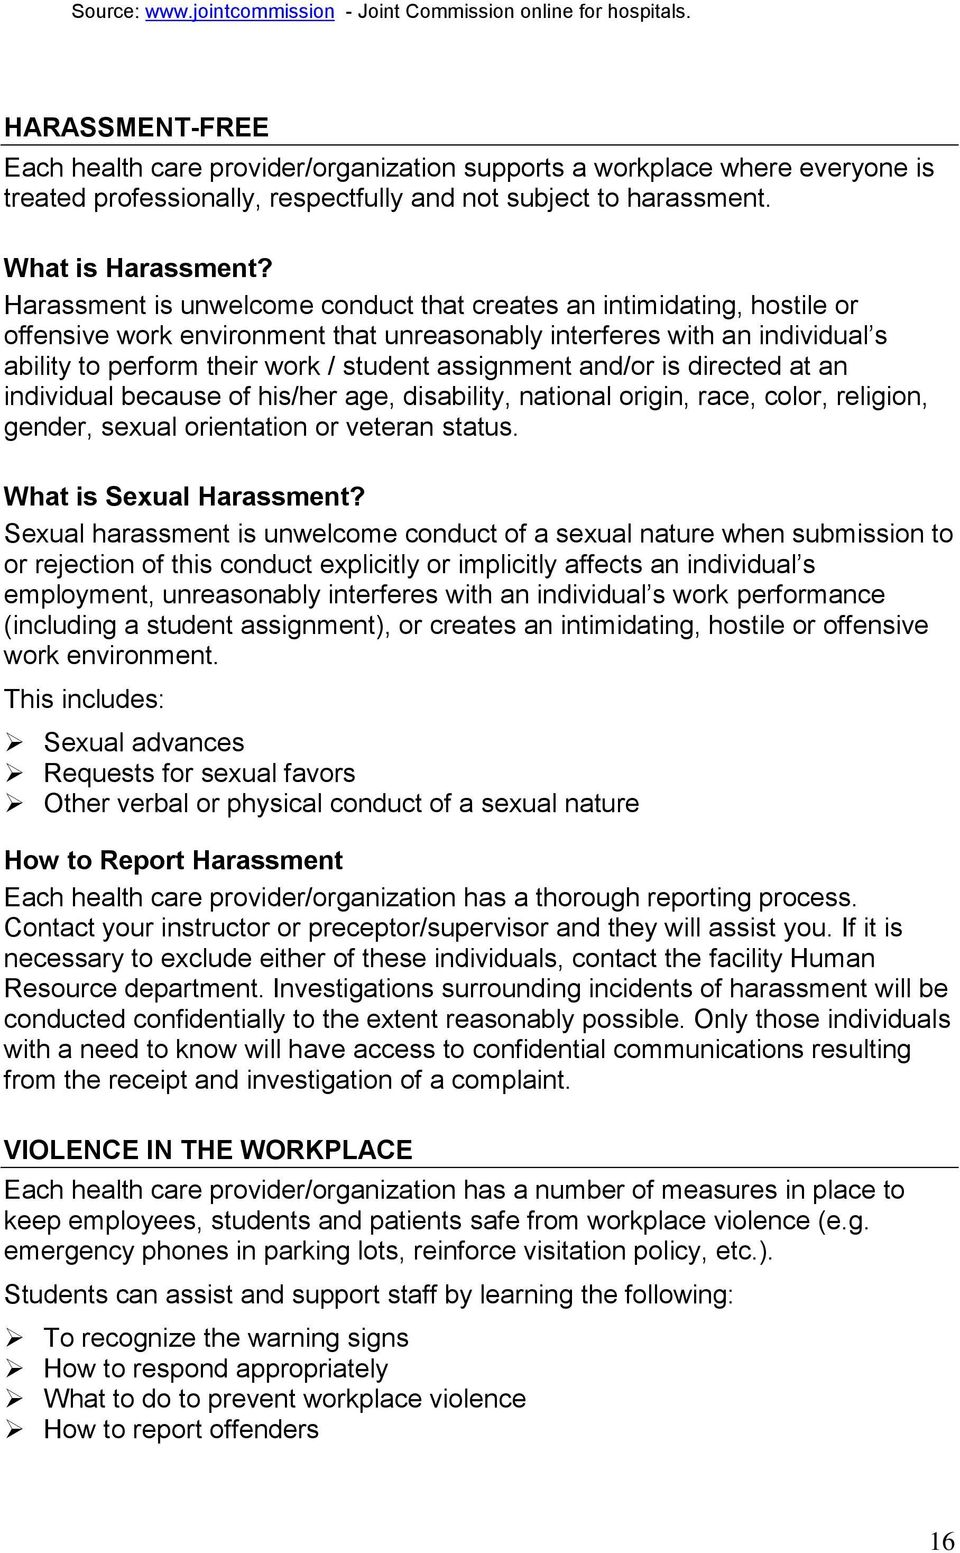 Harassment is unwelcome conduct that creates an intimidating, hostile or offensive work environment that unreasonably interferes with an individual s ability to perform their work / student